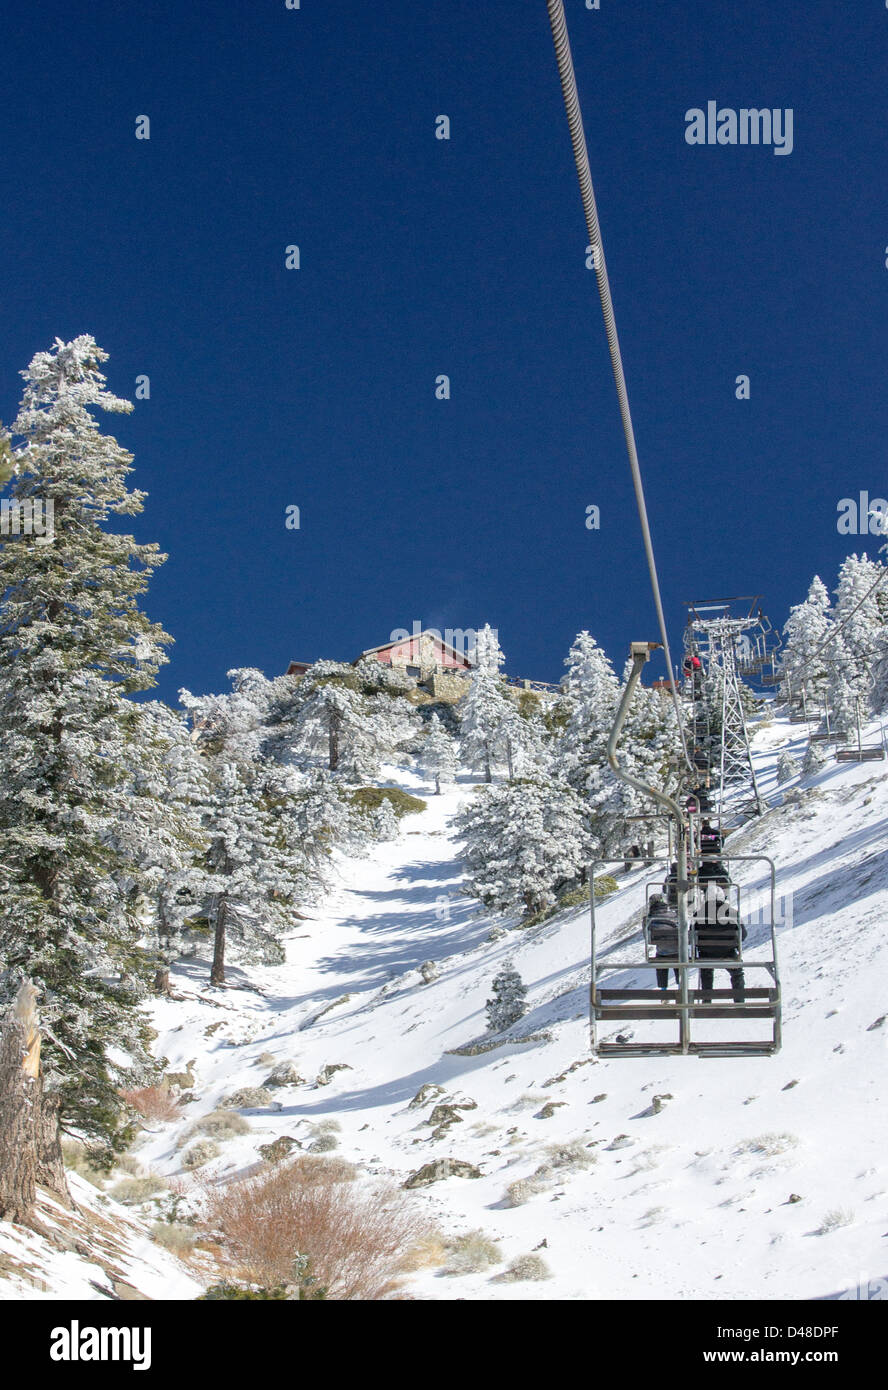 riders on the chair lift at mt. baldy ski resort stock photo